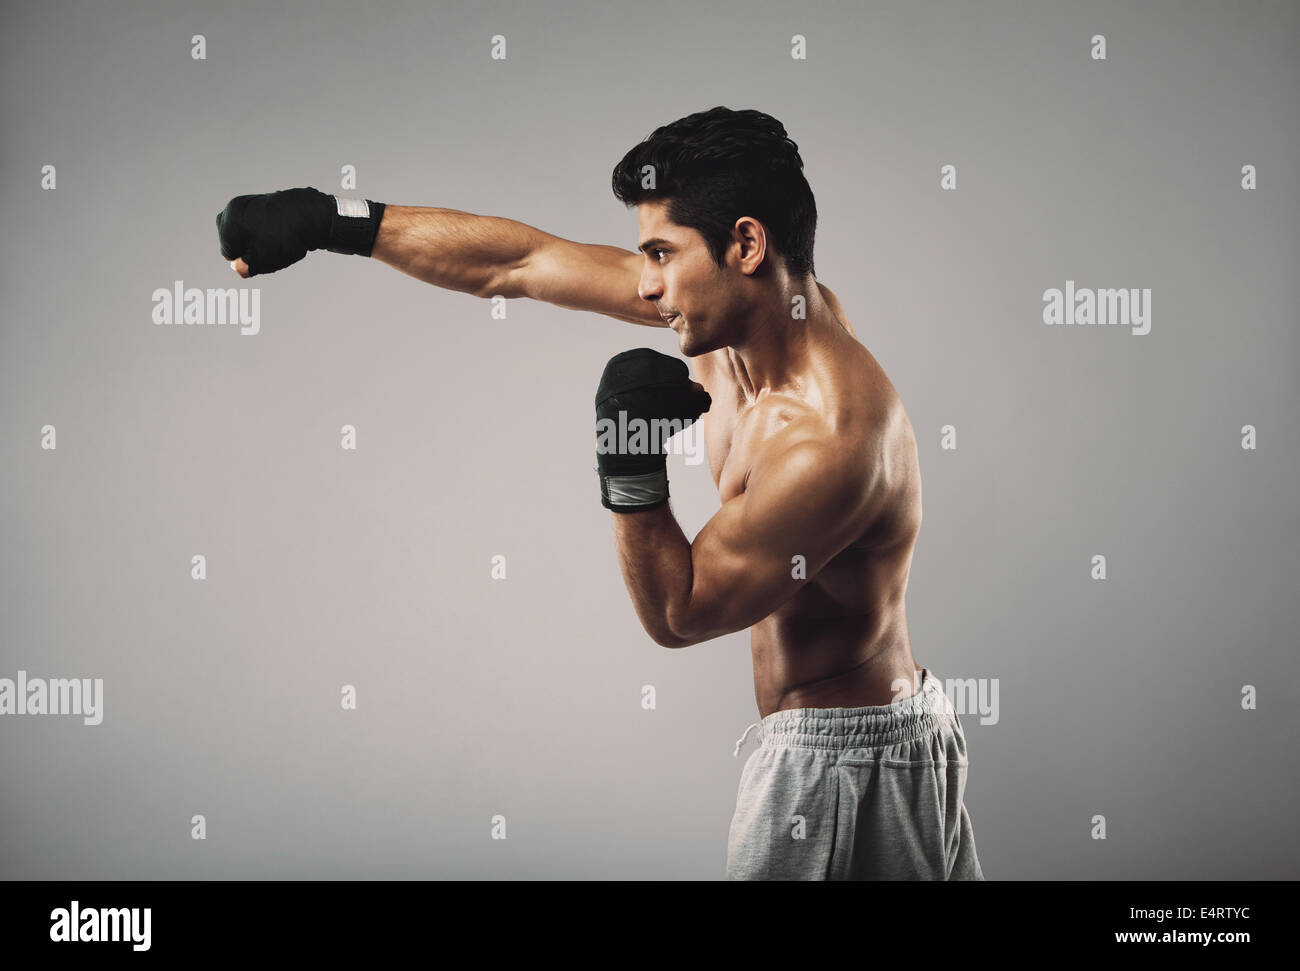 Profile view of young man practicing shadowboxing on grey background. Muscular young male model working out. - Stock Image